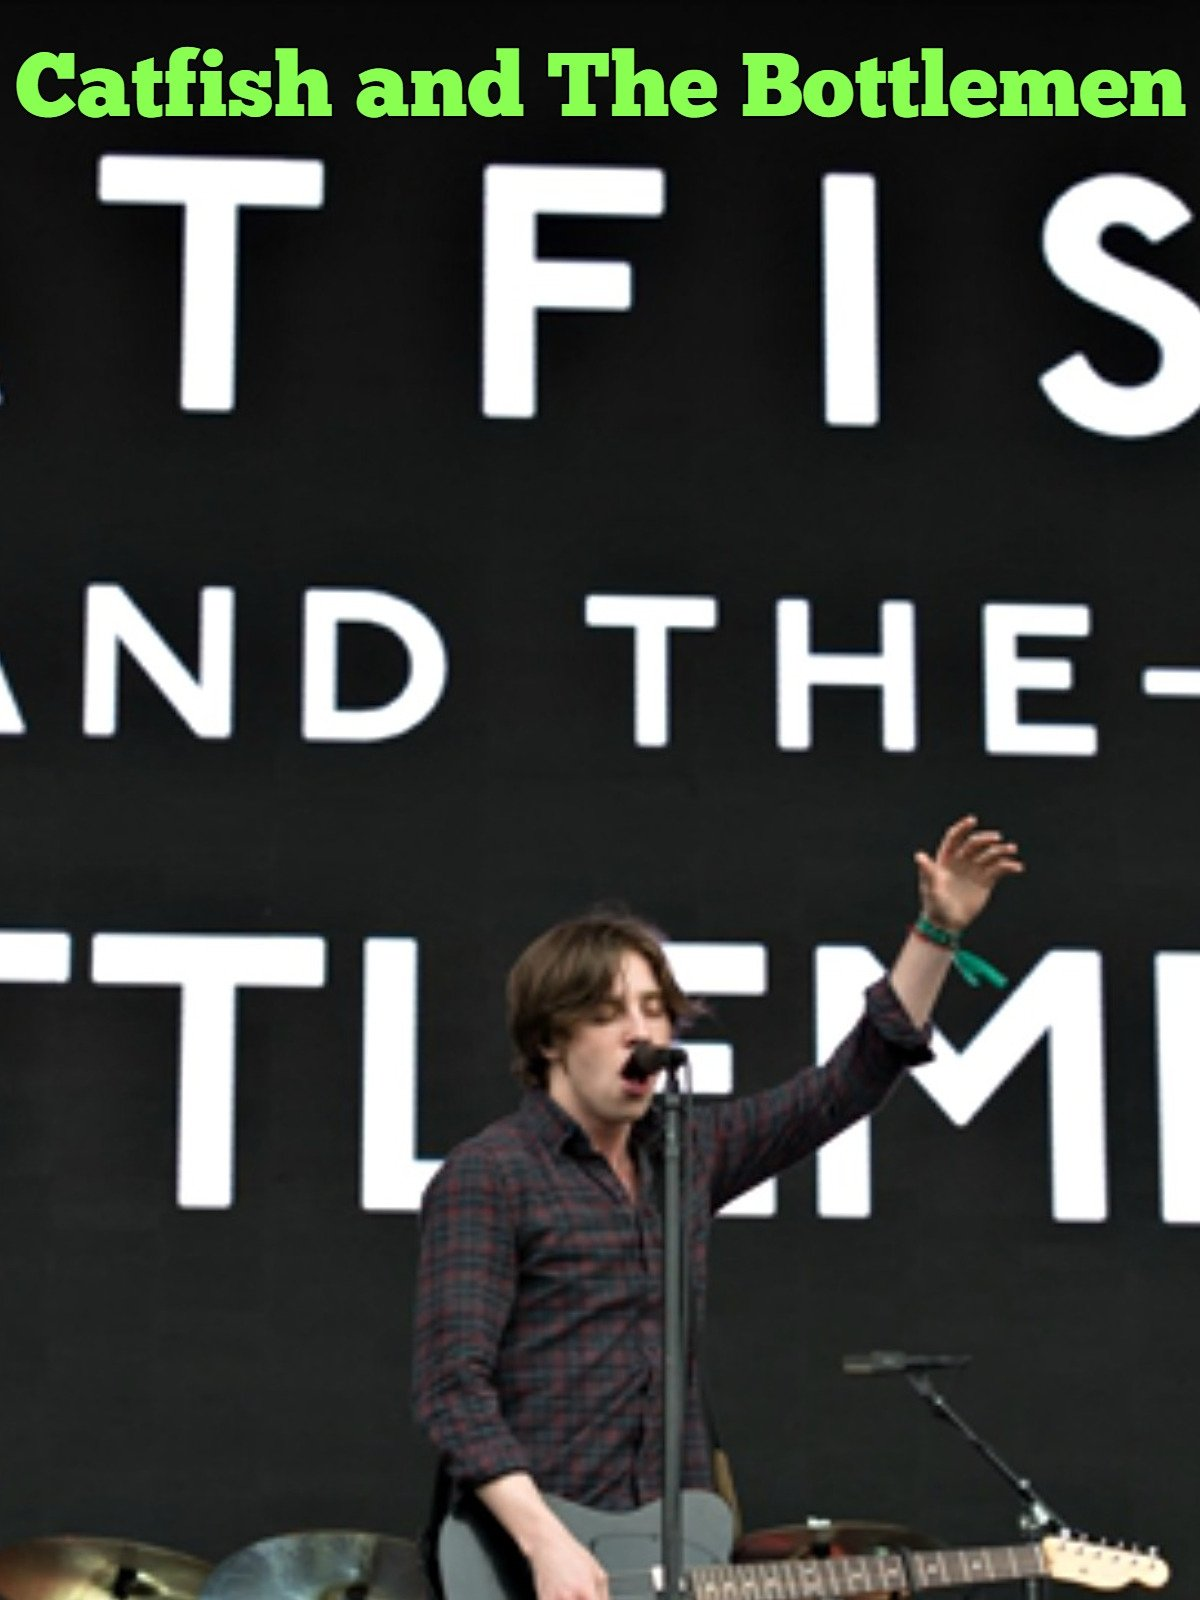 Catfish and The Bottlemen on Amazon Prime Video UK